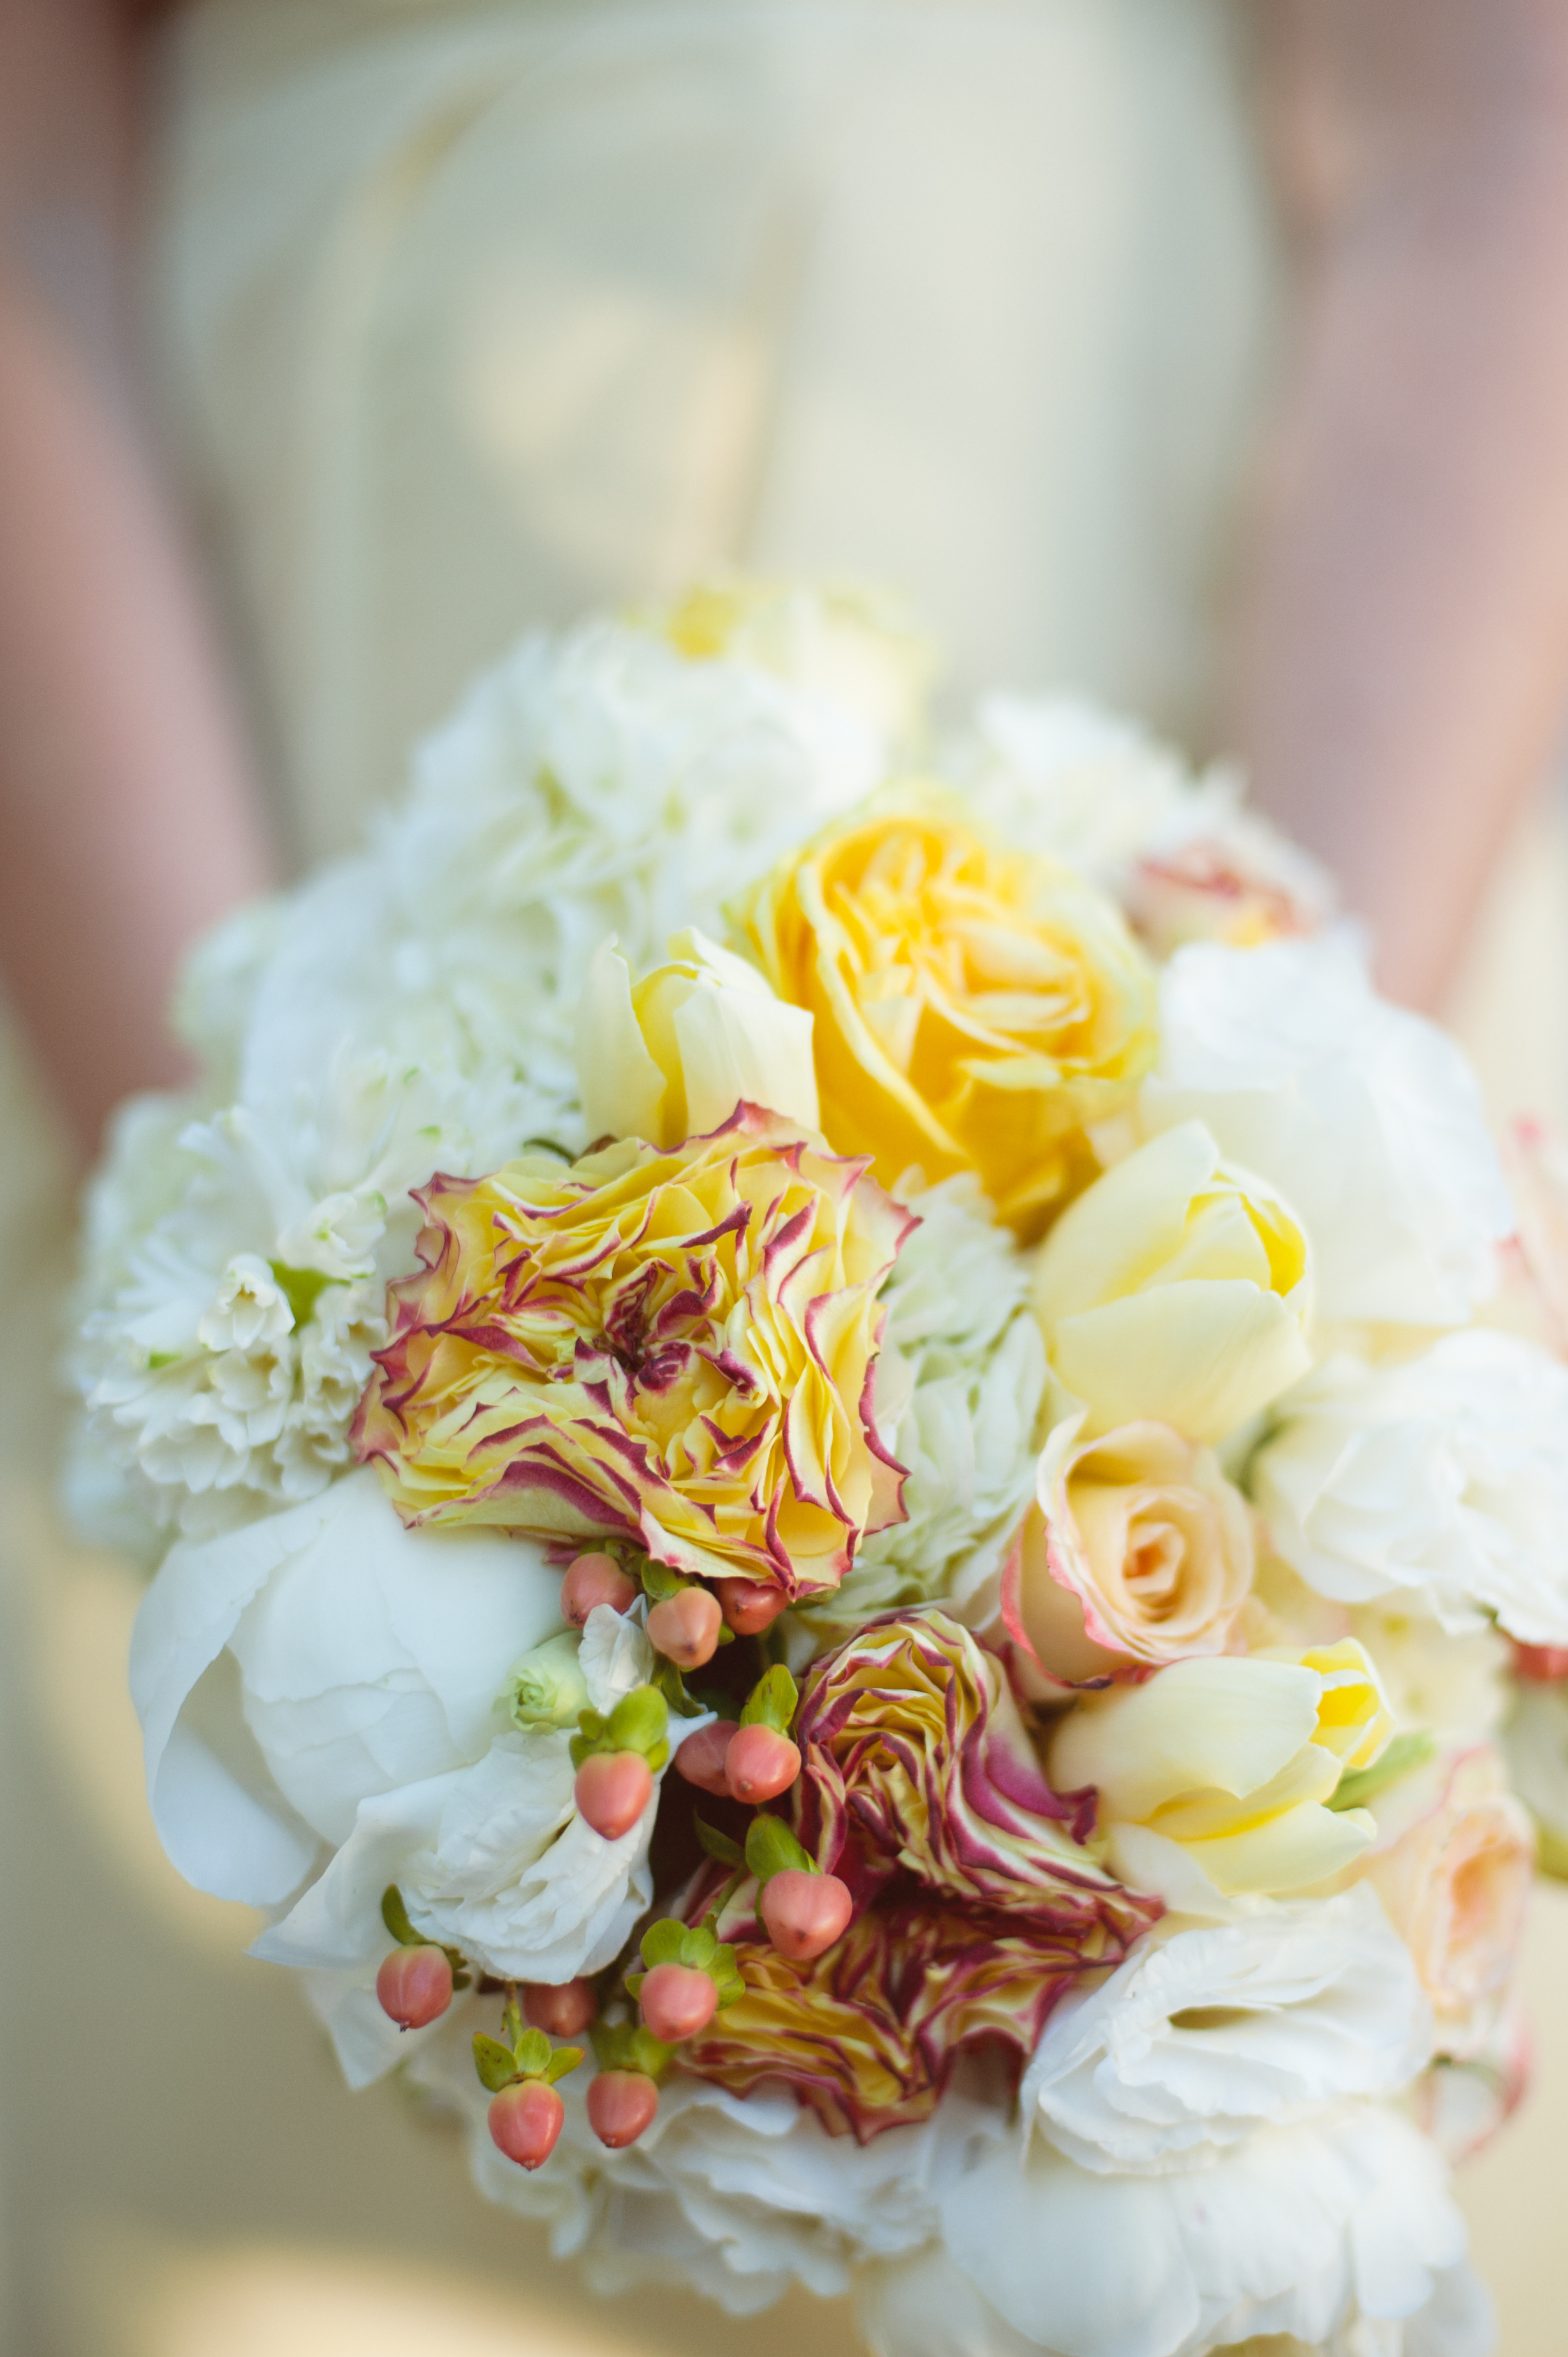 Flowers & Decor, white, yellow, Bride Bouquets, Flowers, Bouquet, Jen kevin